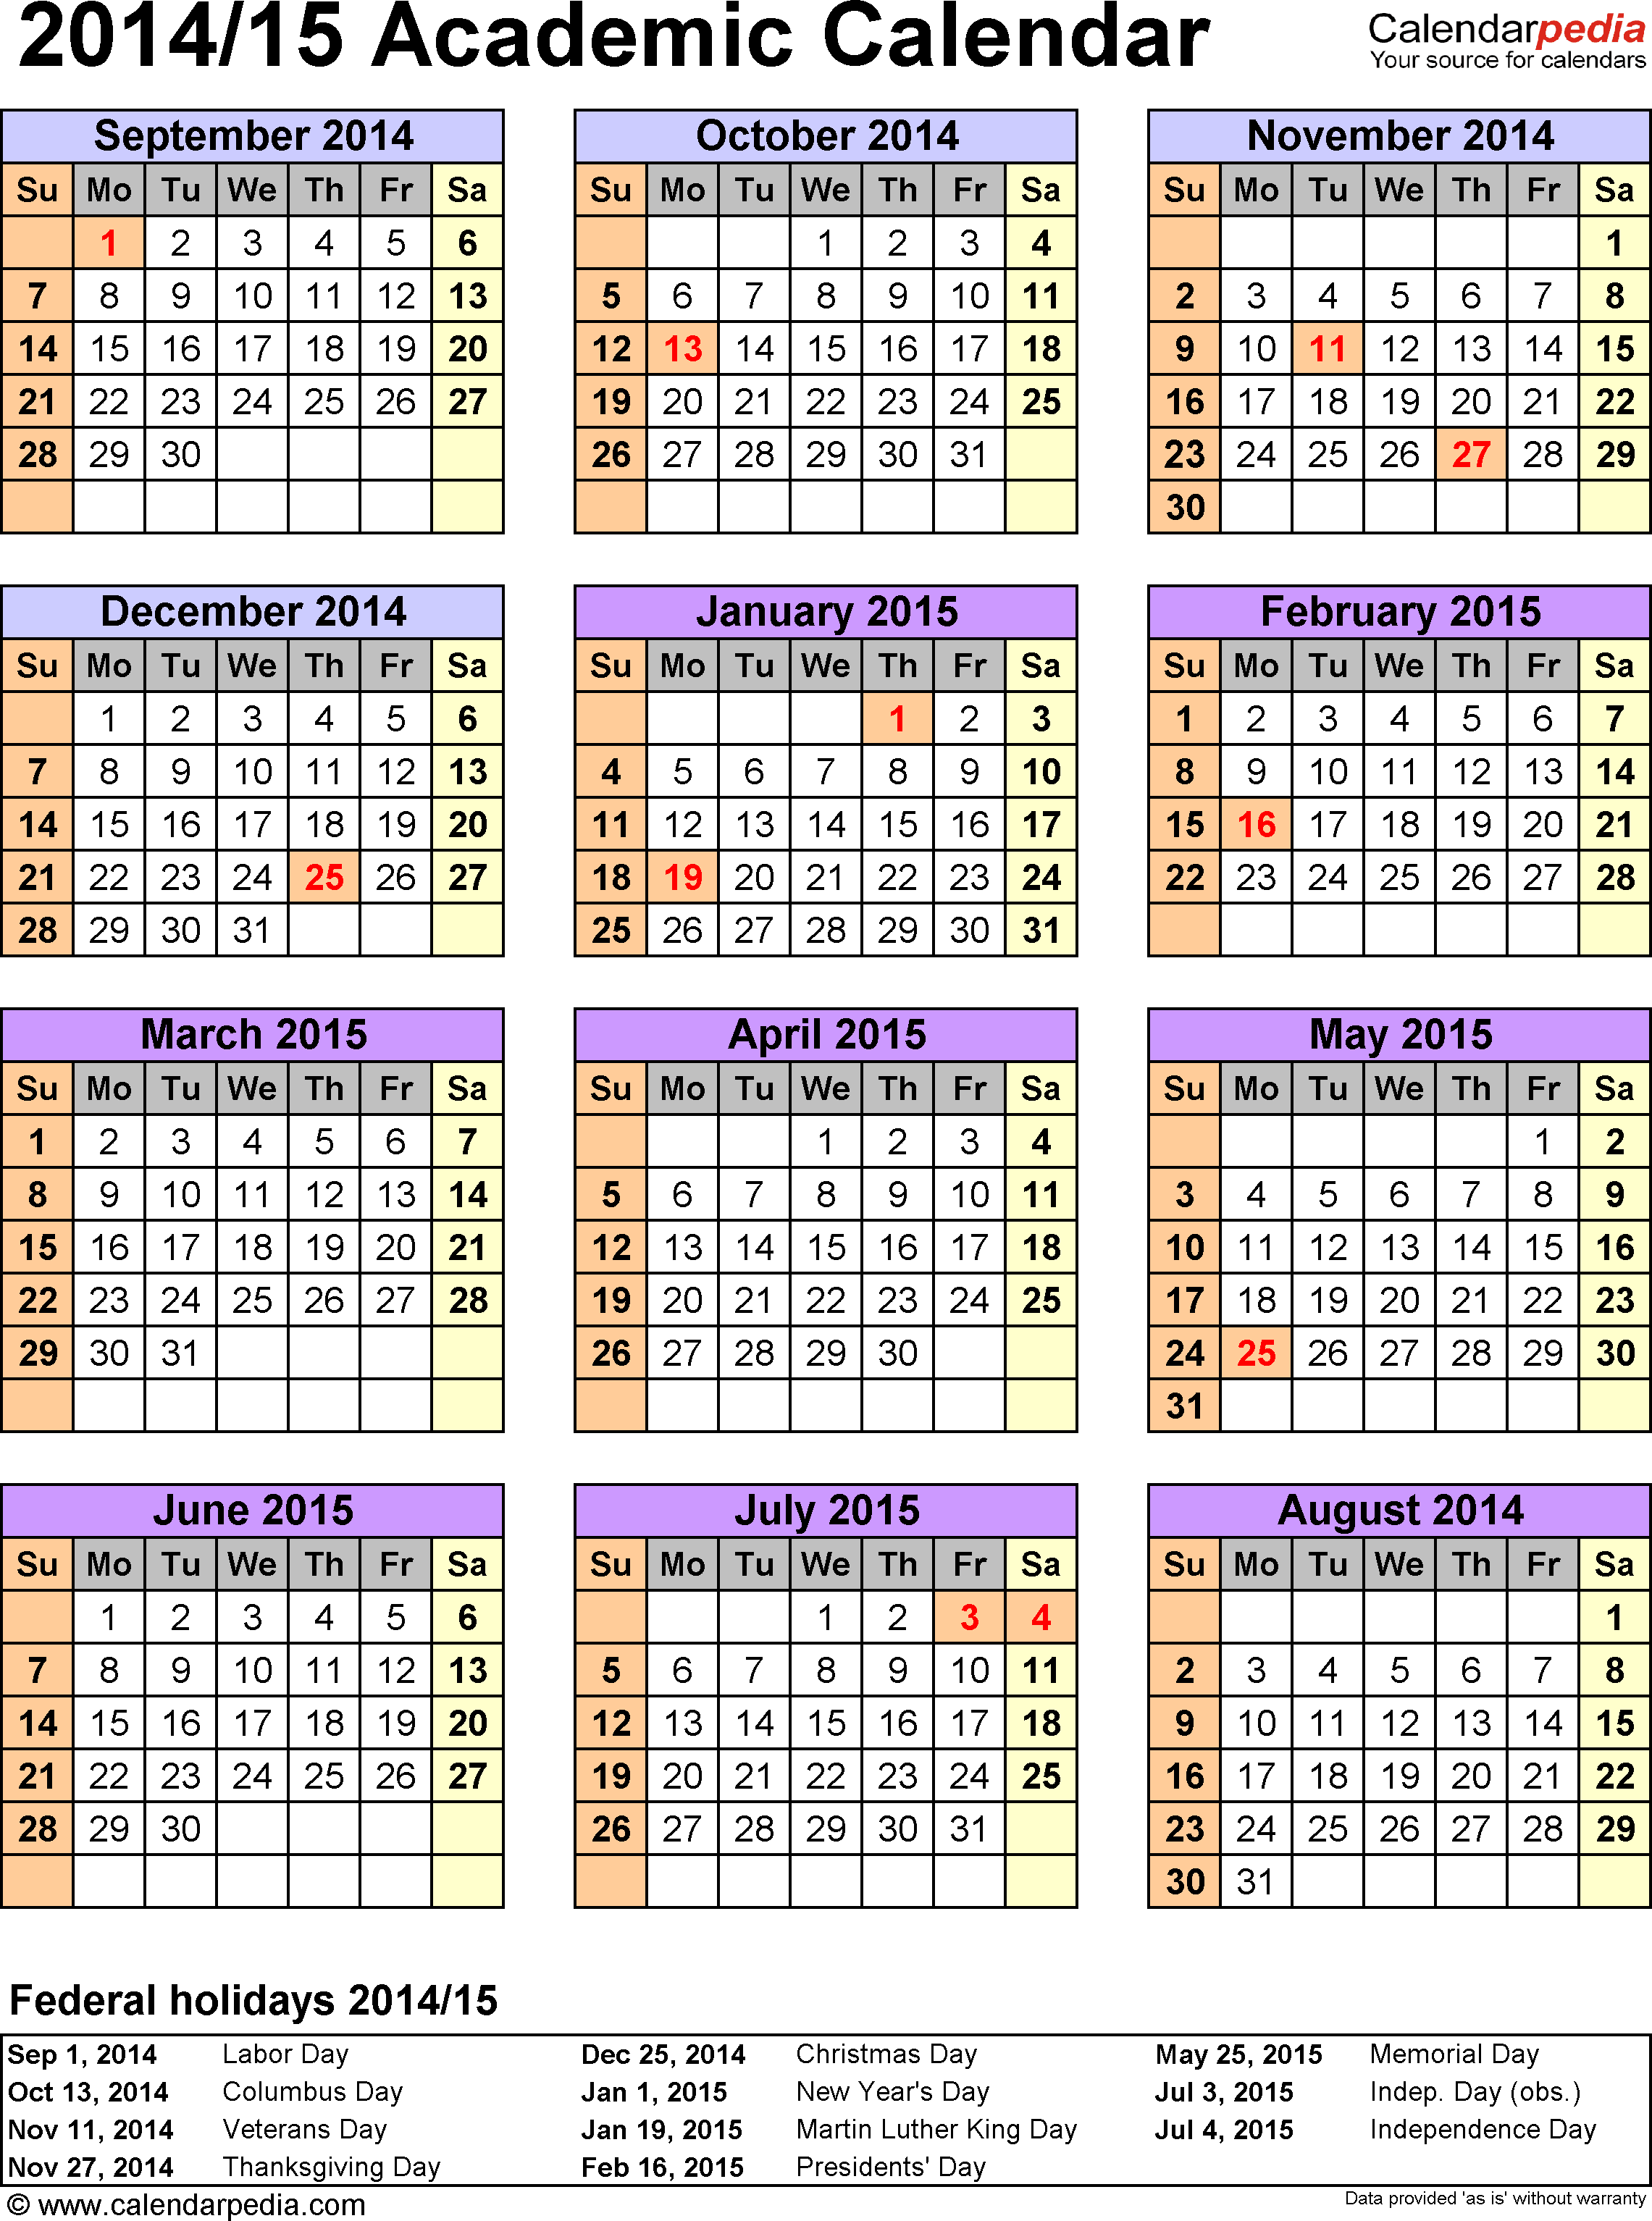 University Of Arizona Academic Calendar 2020-21 Academic Calendar CDS | Department of Education